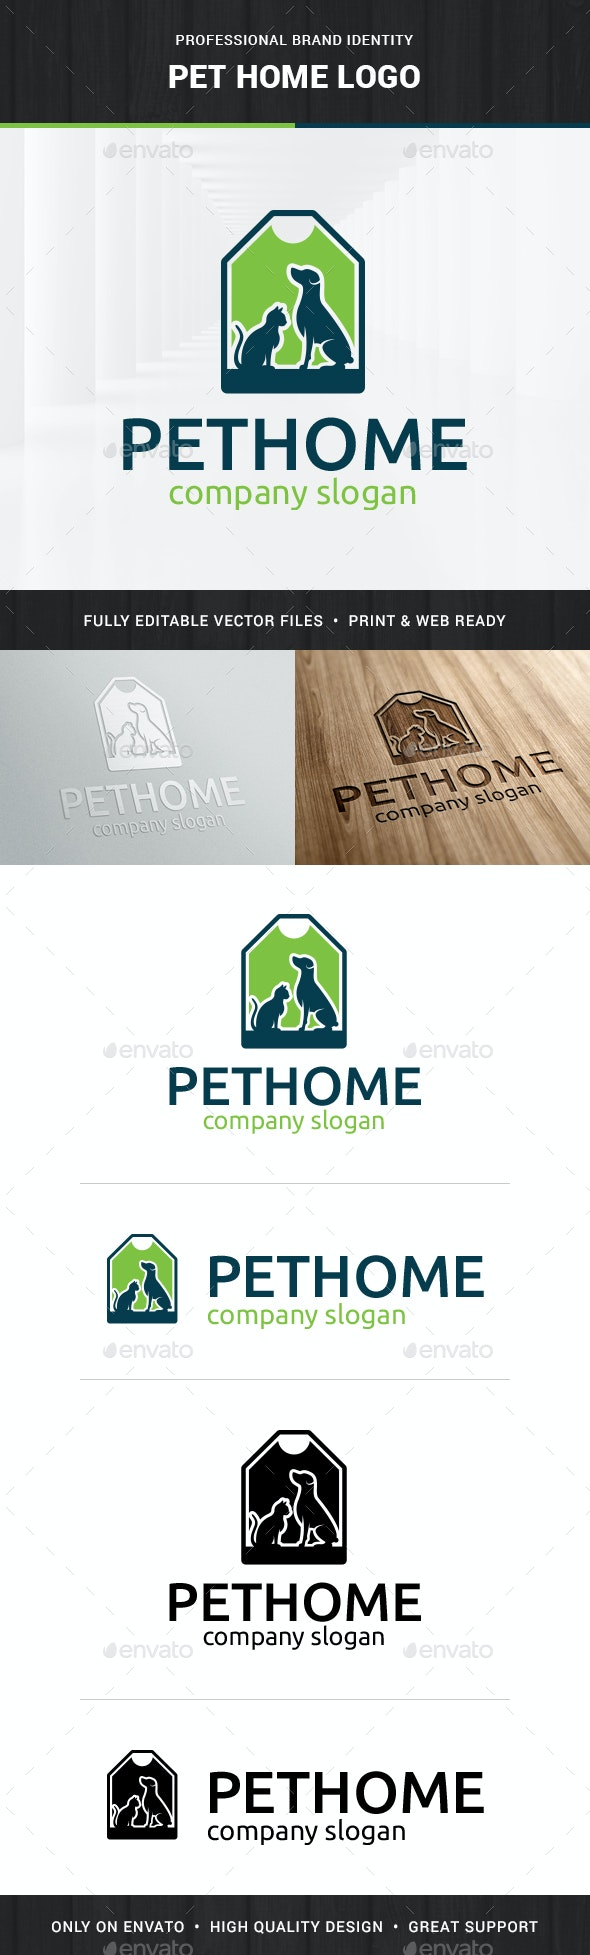 Pet Home Logo Template - Animals Logo Templates